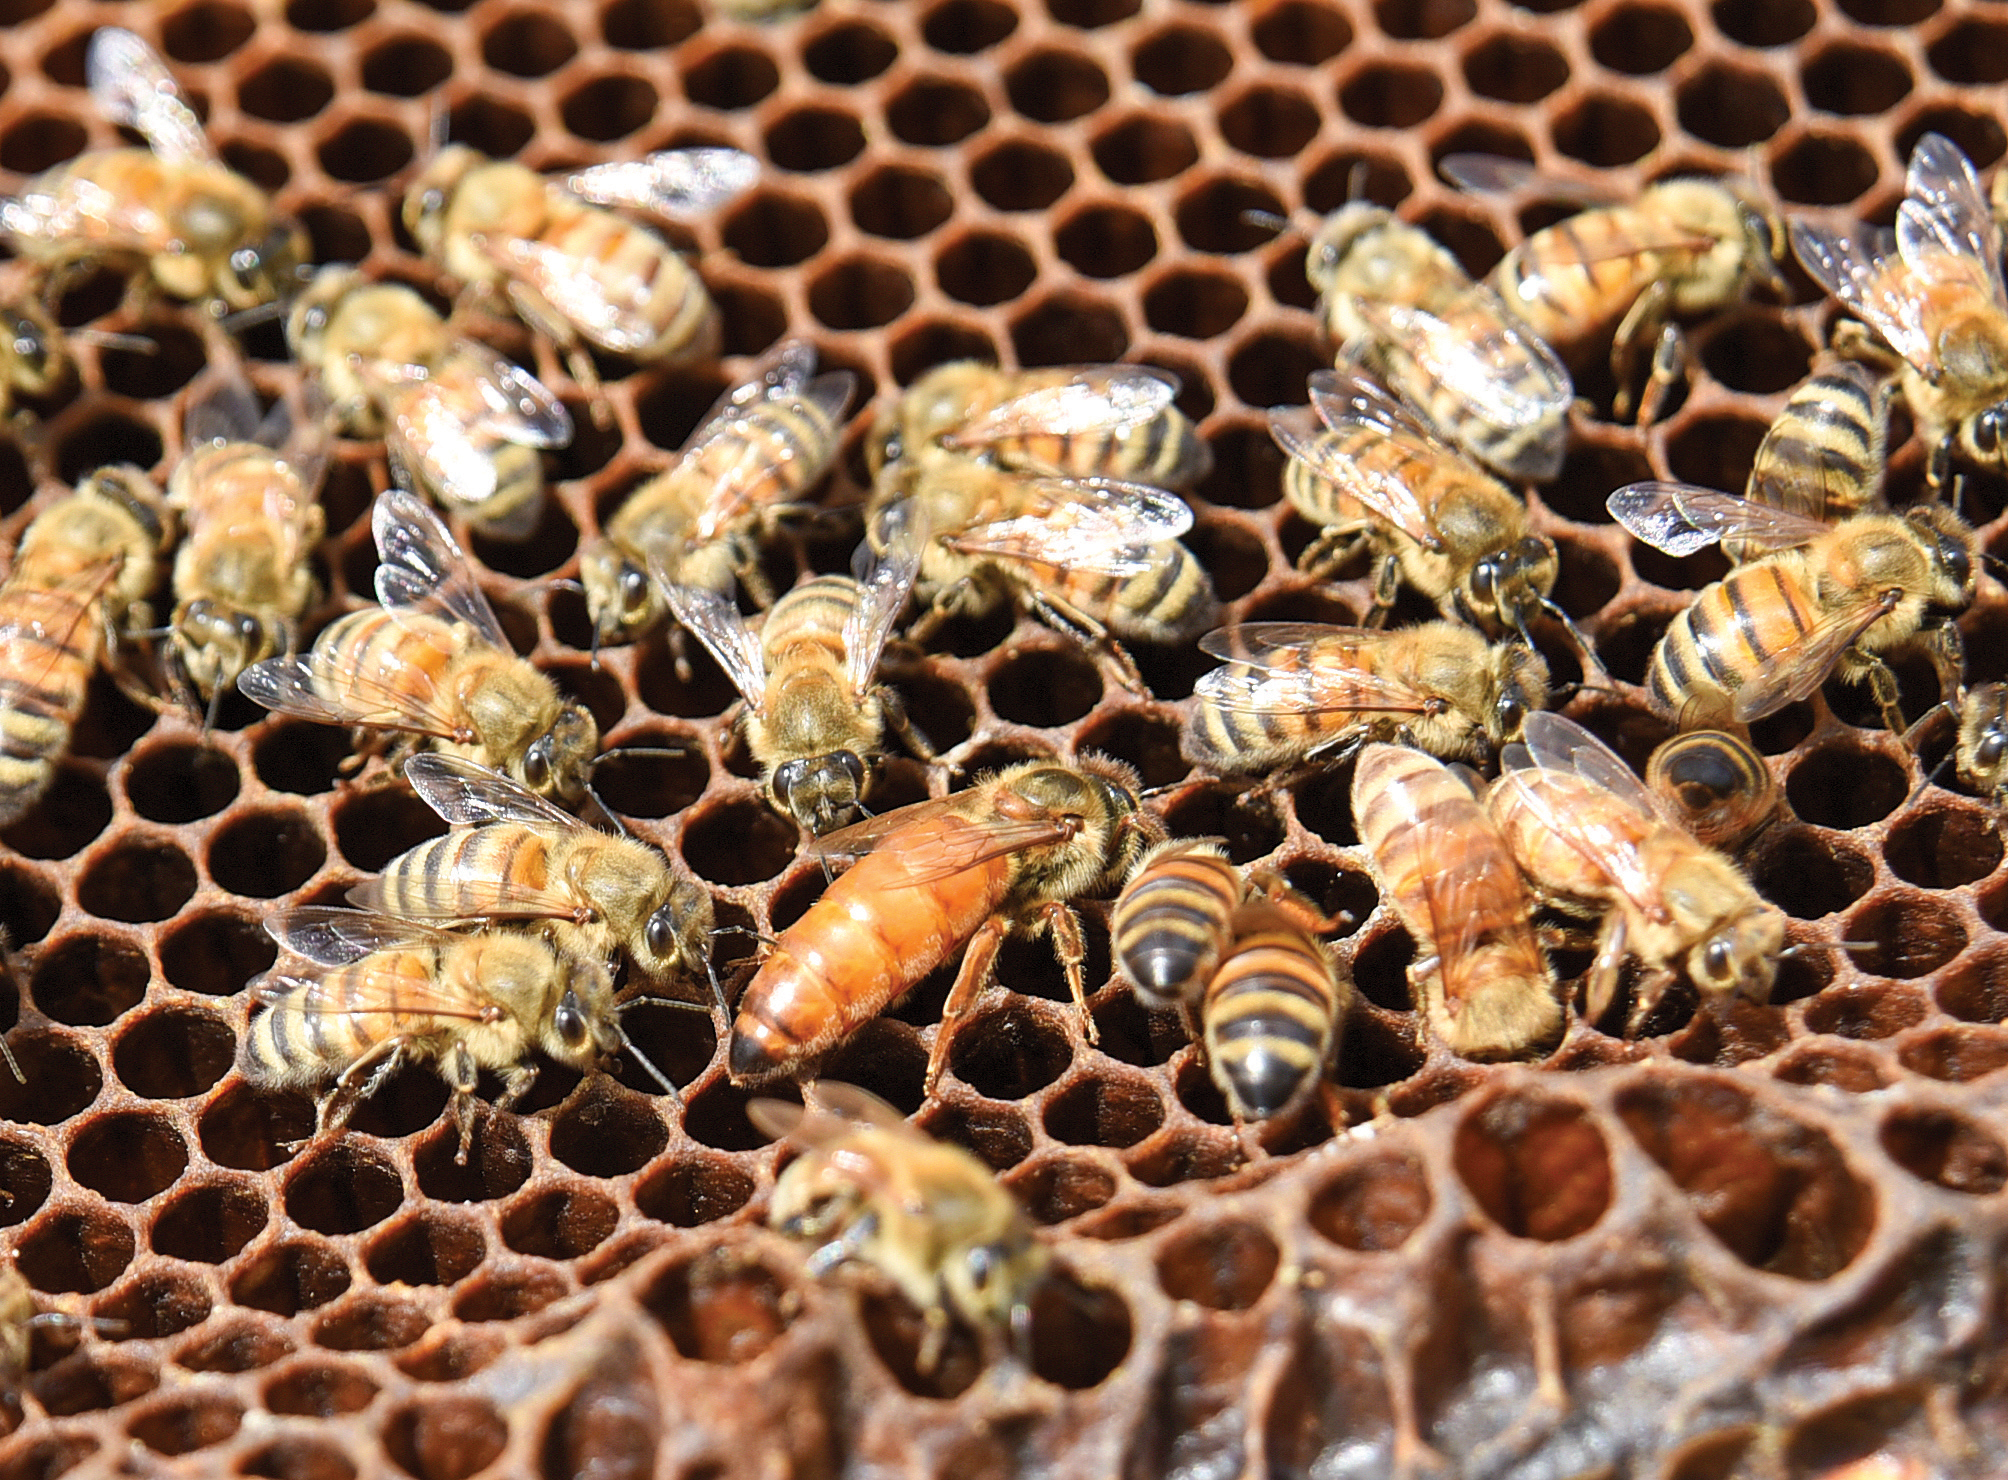 OFB_beekeeper_2074: The queen bee, with her solid bright orange back, is surrounded by female worker bees on a honeycomb at the apiary managed by Bethany Carlson, 20, in Edgerton, Ohio, Thursday, June 30, 2016. (Photo by Peggy Turbett)